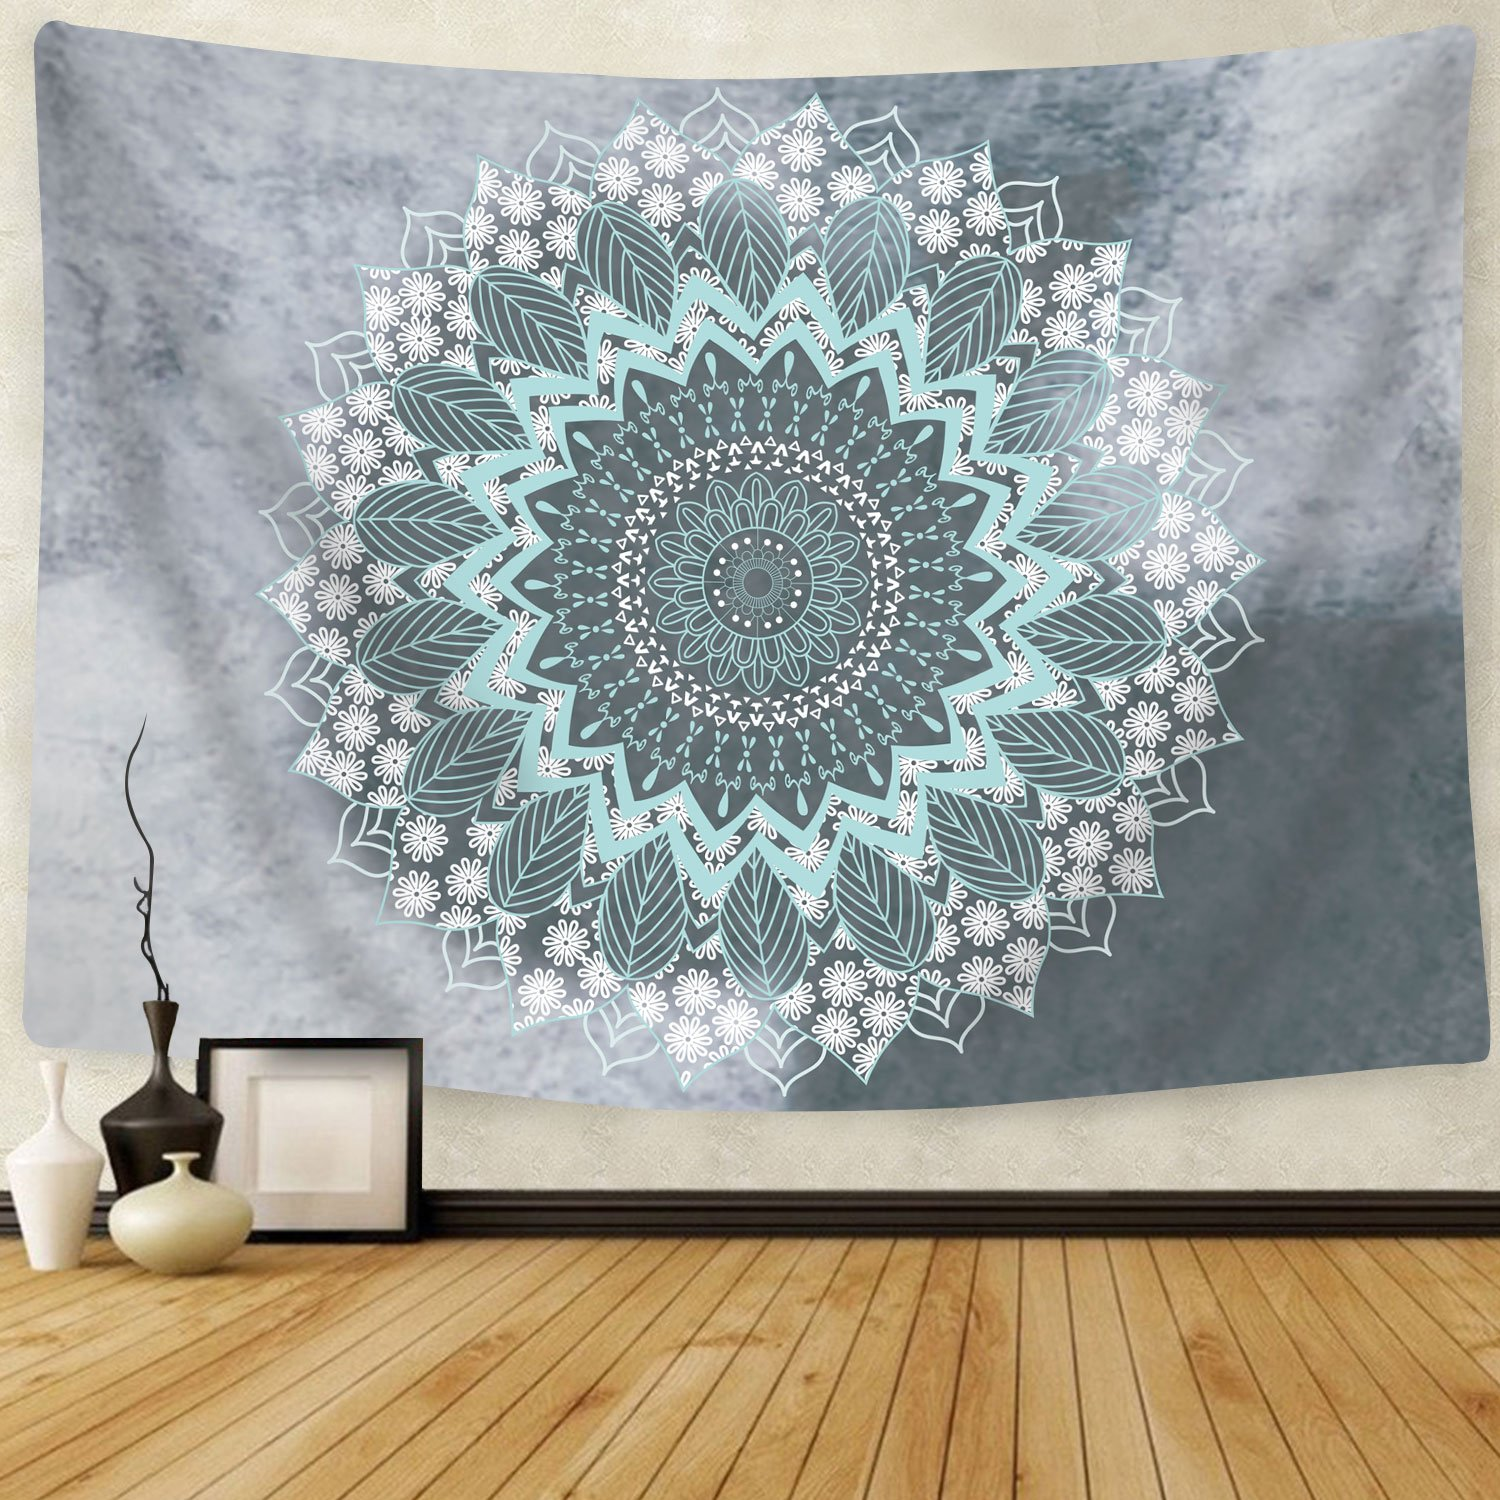 BLEUM CADE Tapestry Mandala Hippie Bohemian Tapestries Wall Hanging Flower Psychedelic Tapestry Wall Hanging Indian Dorm Decor for Living Room Bedroom (S-59.1''×59.1'', Mandala Tapestry) by BLEUM CADE